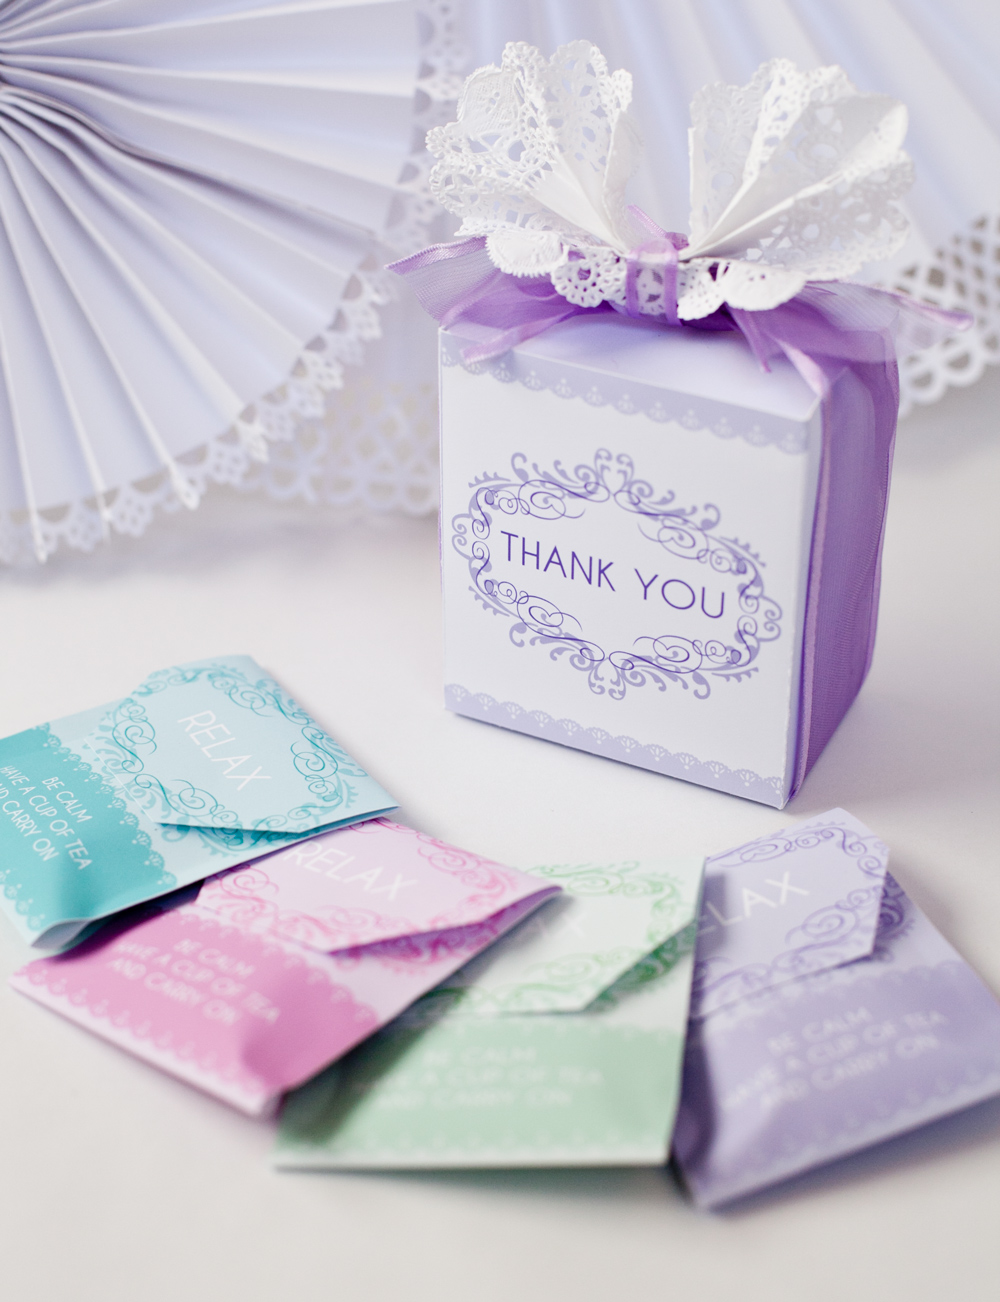 Diy baby shower favor boxes - Diy Baby Shower Favor Boxes 5